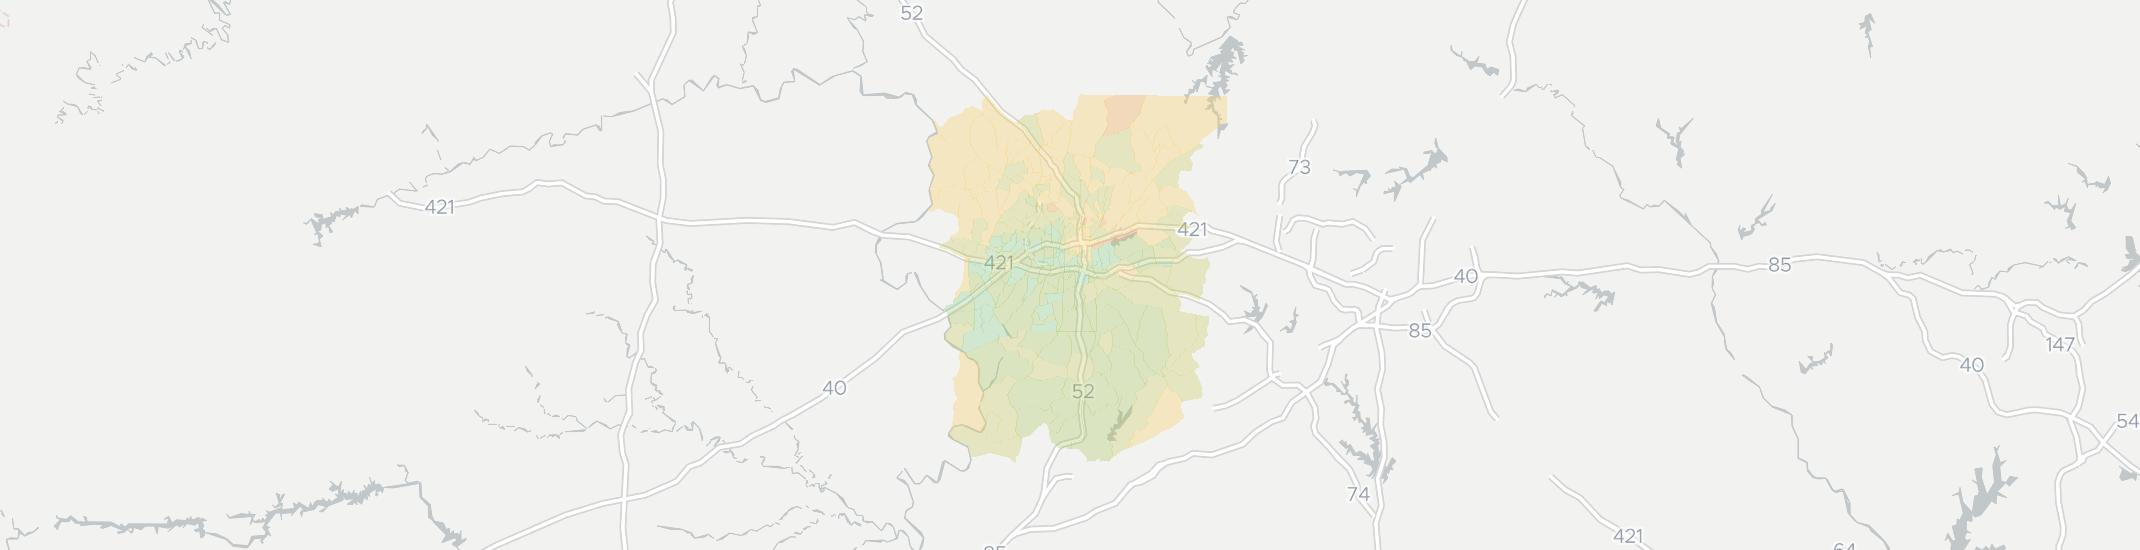 Winston Salem Internet Competition Map. Click for interactive map.